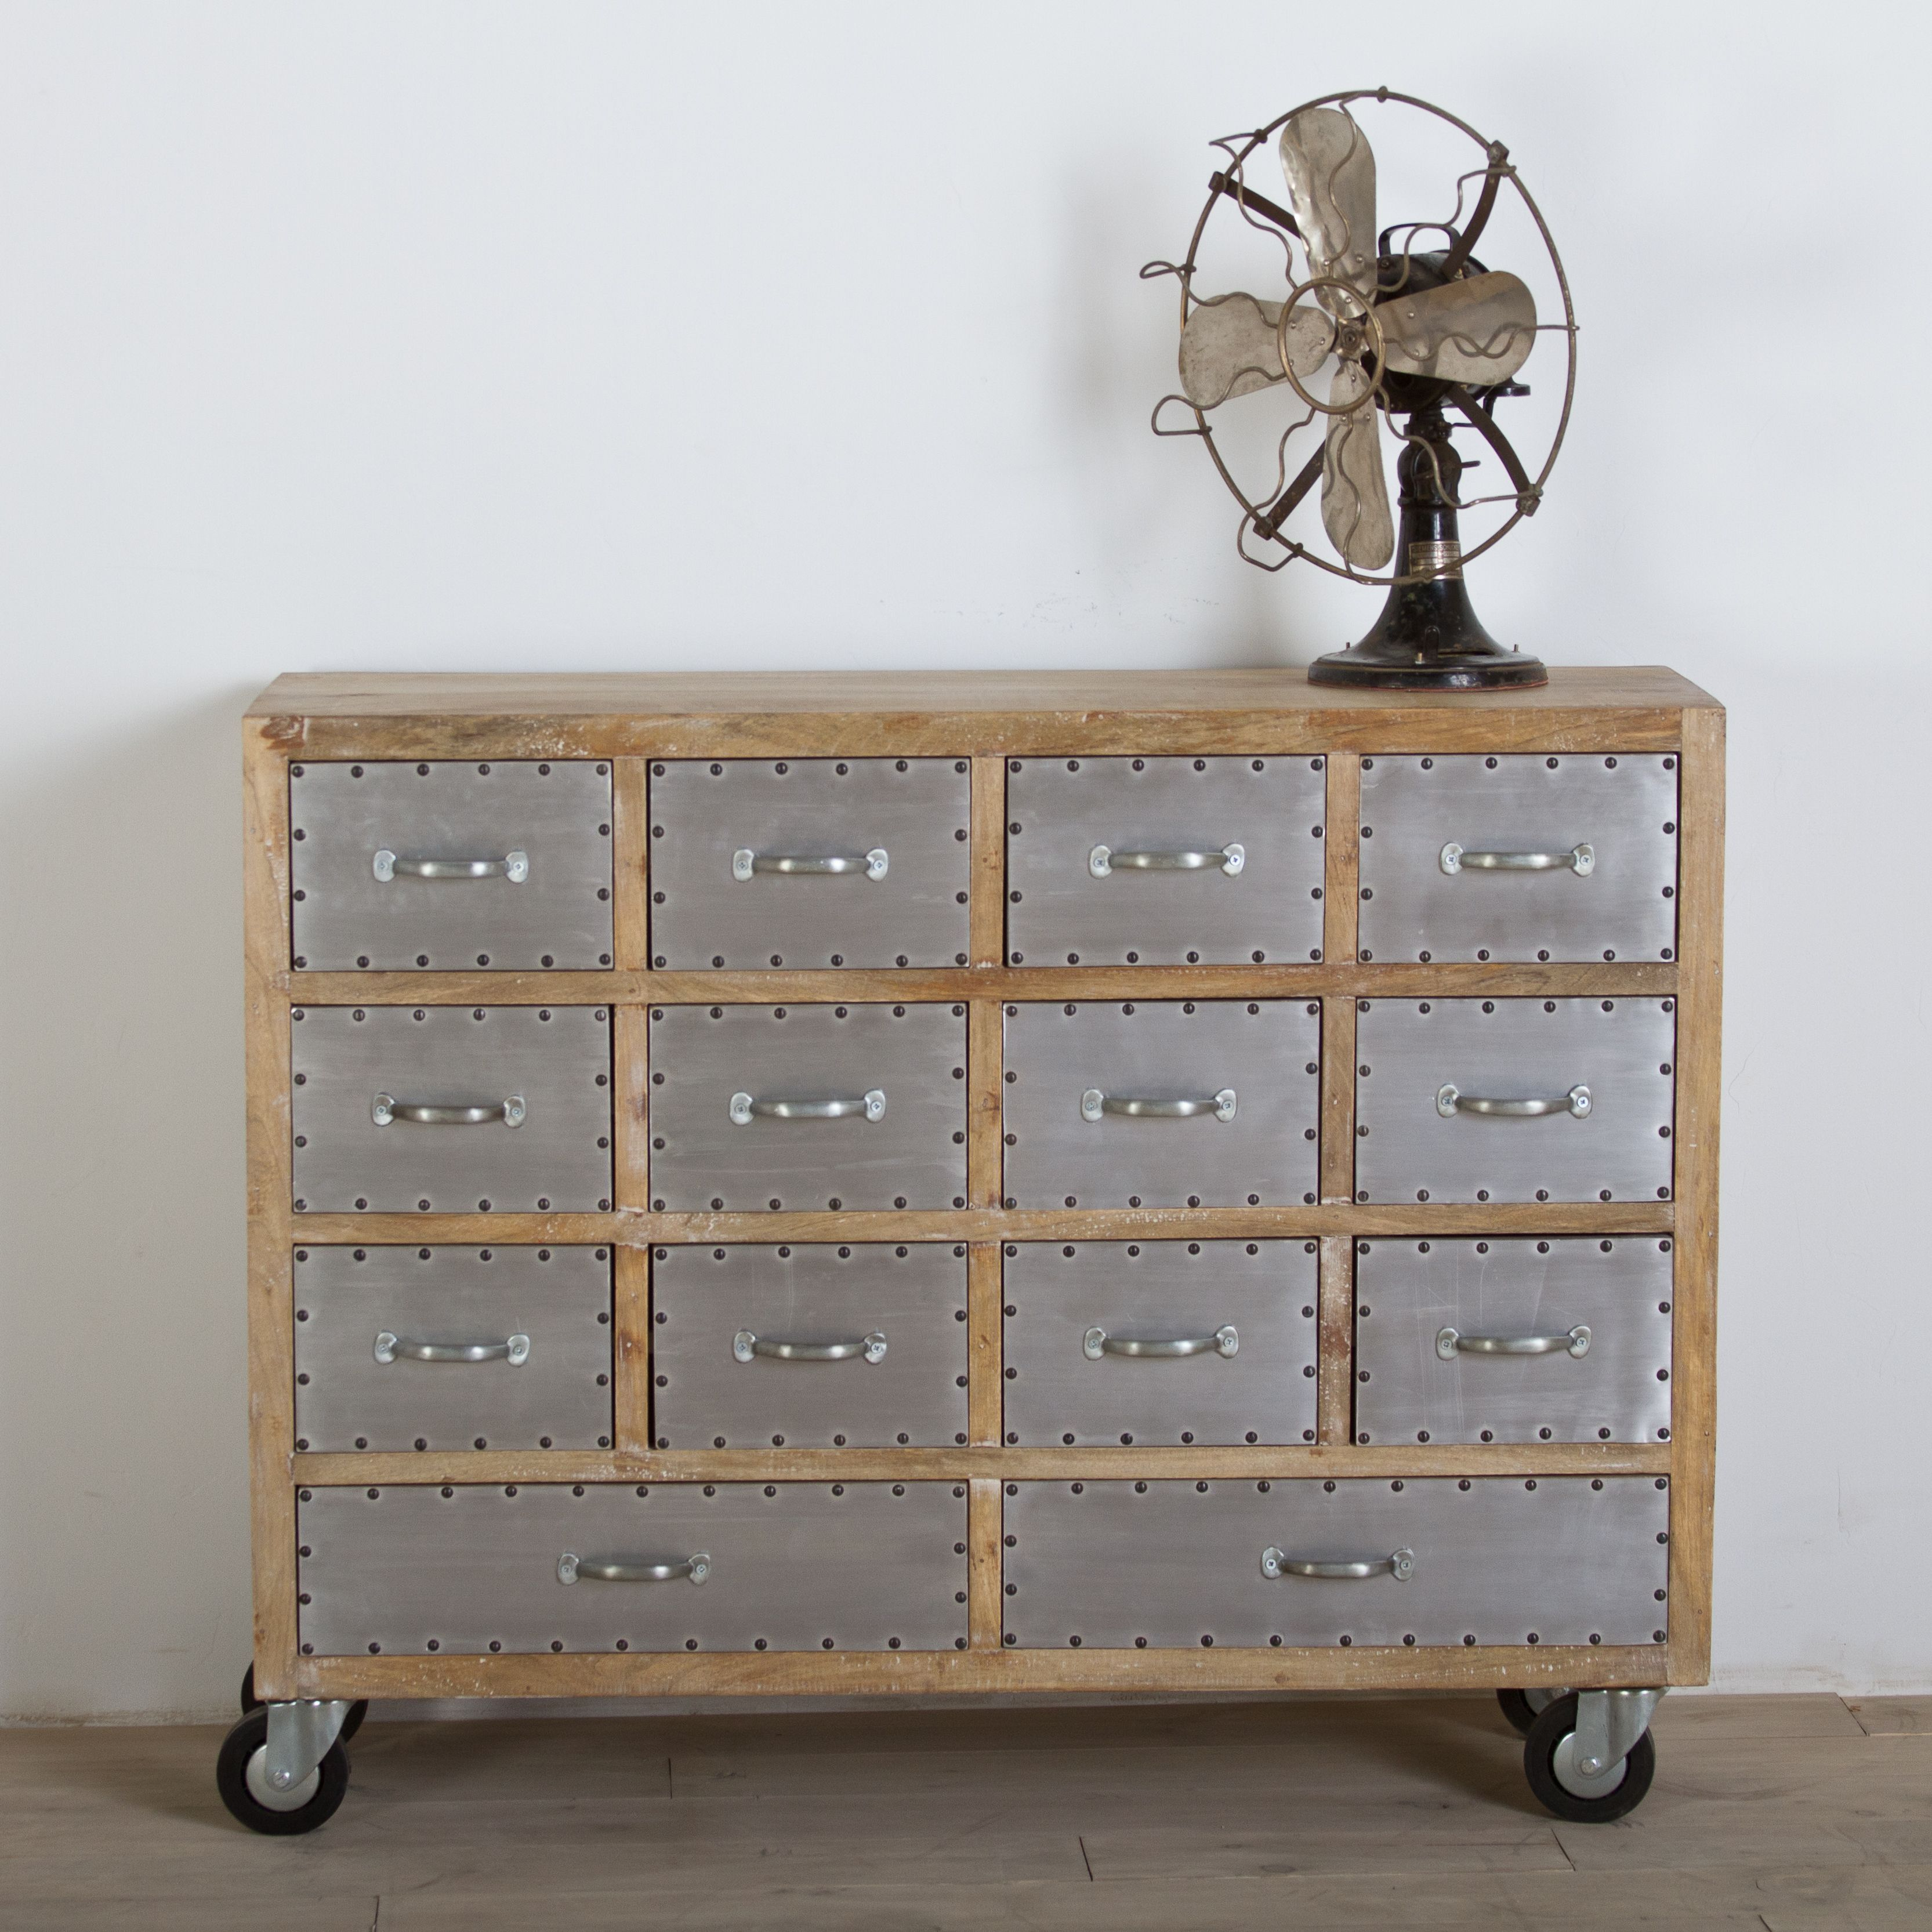 Stay organized in style with this reclaimed wood dresser this